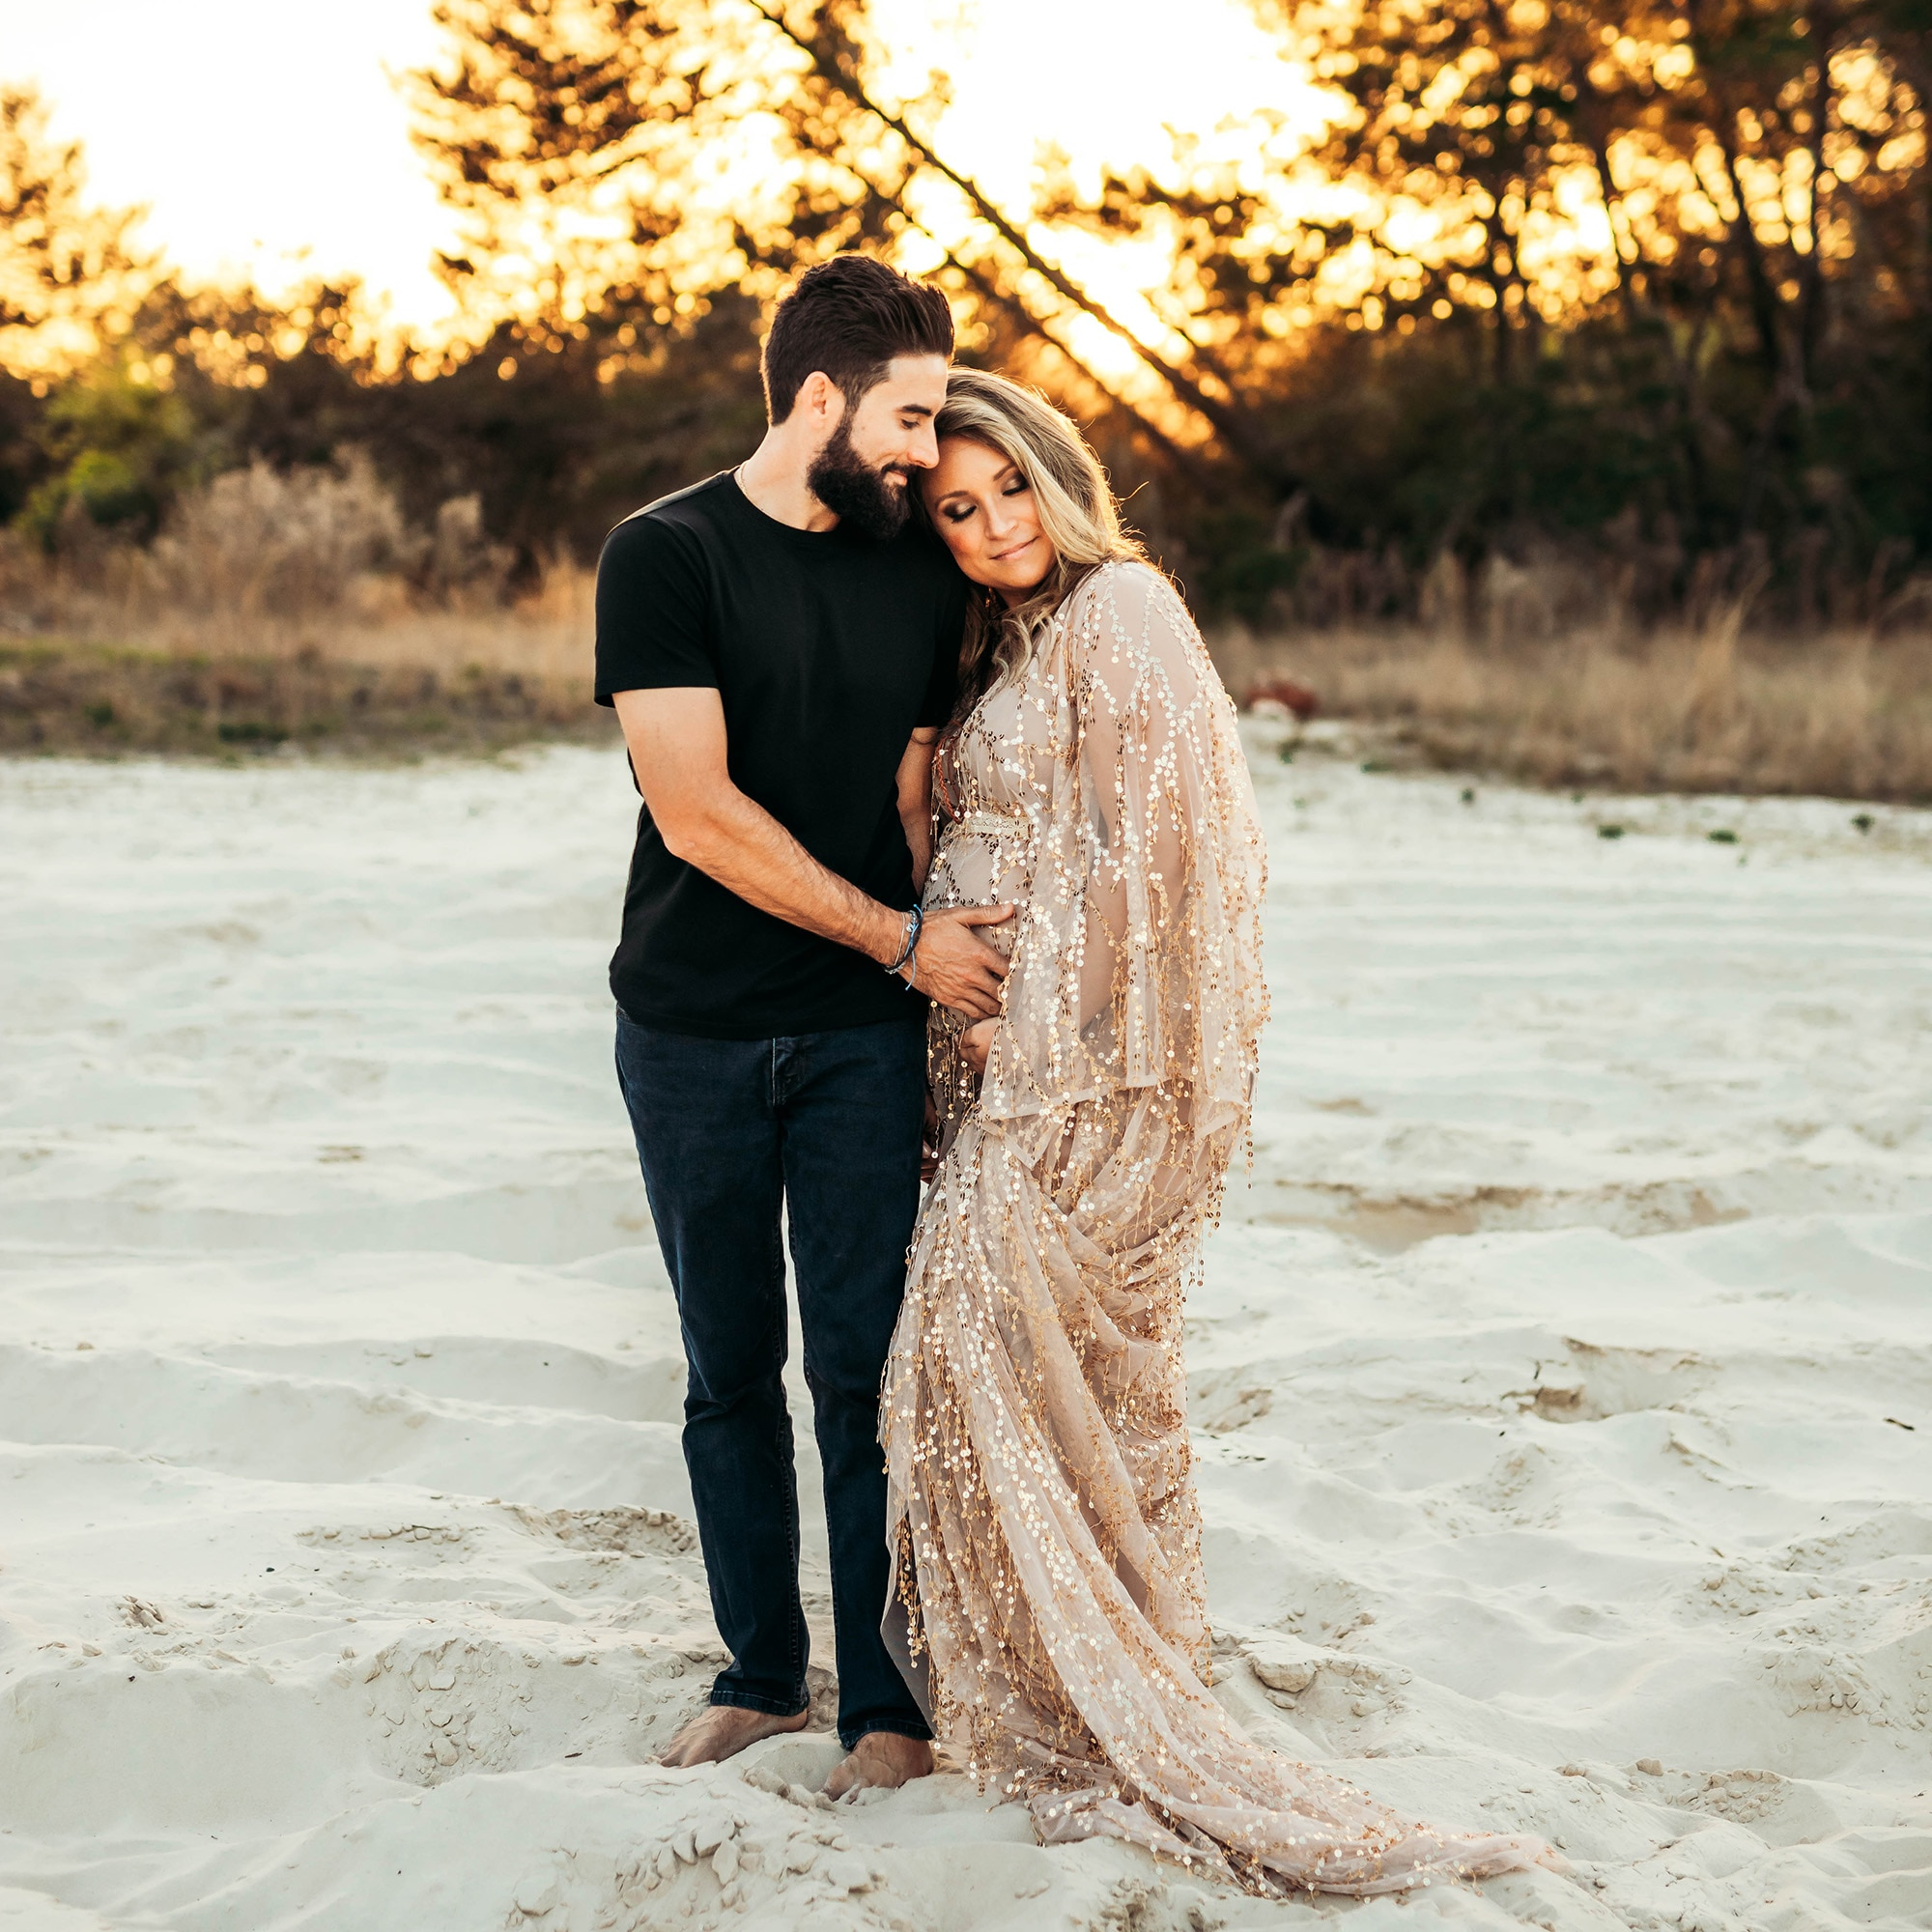 Don&Judy Golden Sequin Tassels Maternity Sequence Dress for Photo Shoot Christmas Boho Evening Gown Shooting Prom Dresses 2020 enlarge